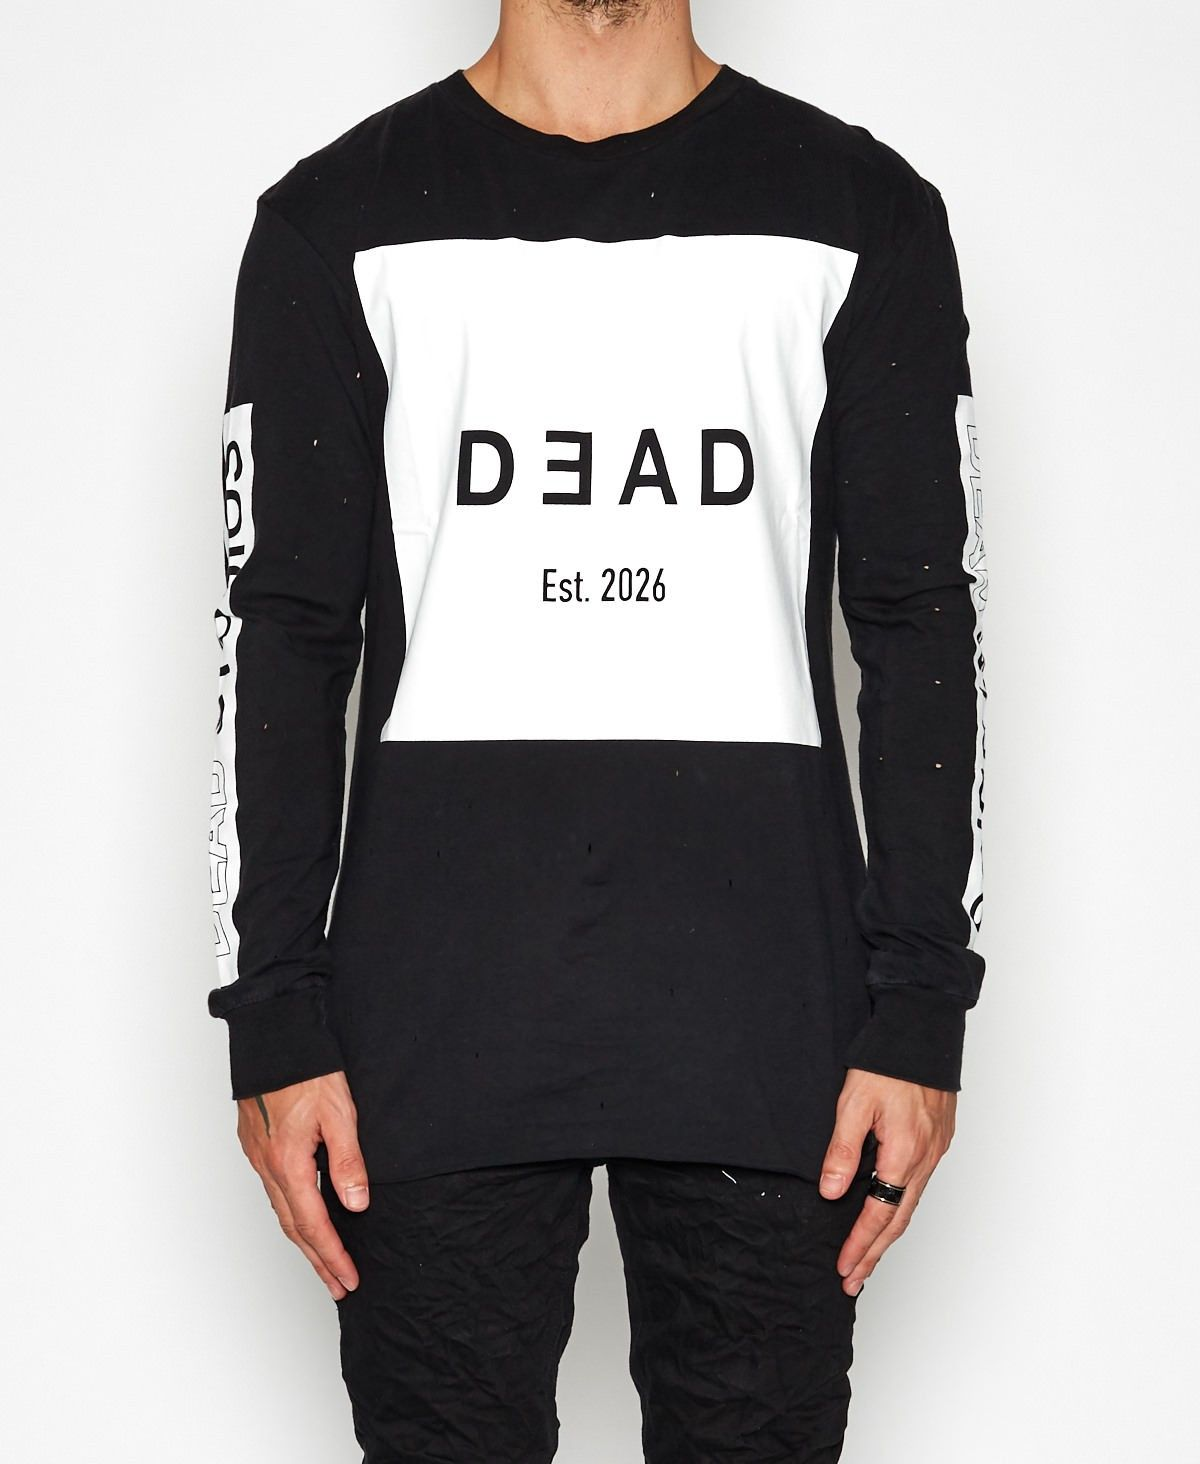 Dead Studios   EST 2026 LS T-Shirt Black All Men s Styles Style Men    Neverland Store 3160c220e7